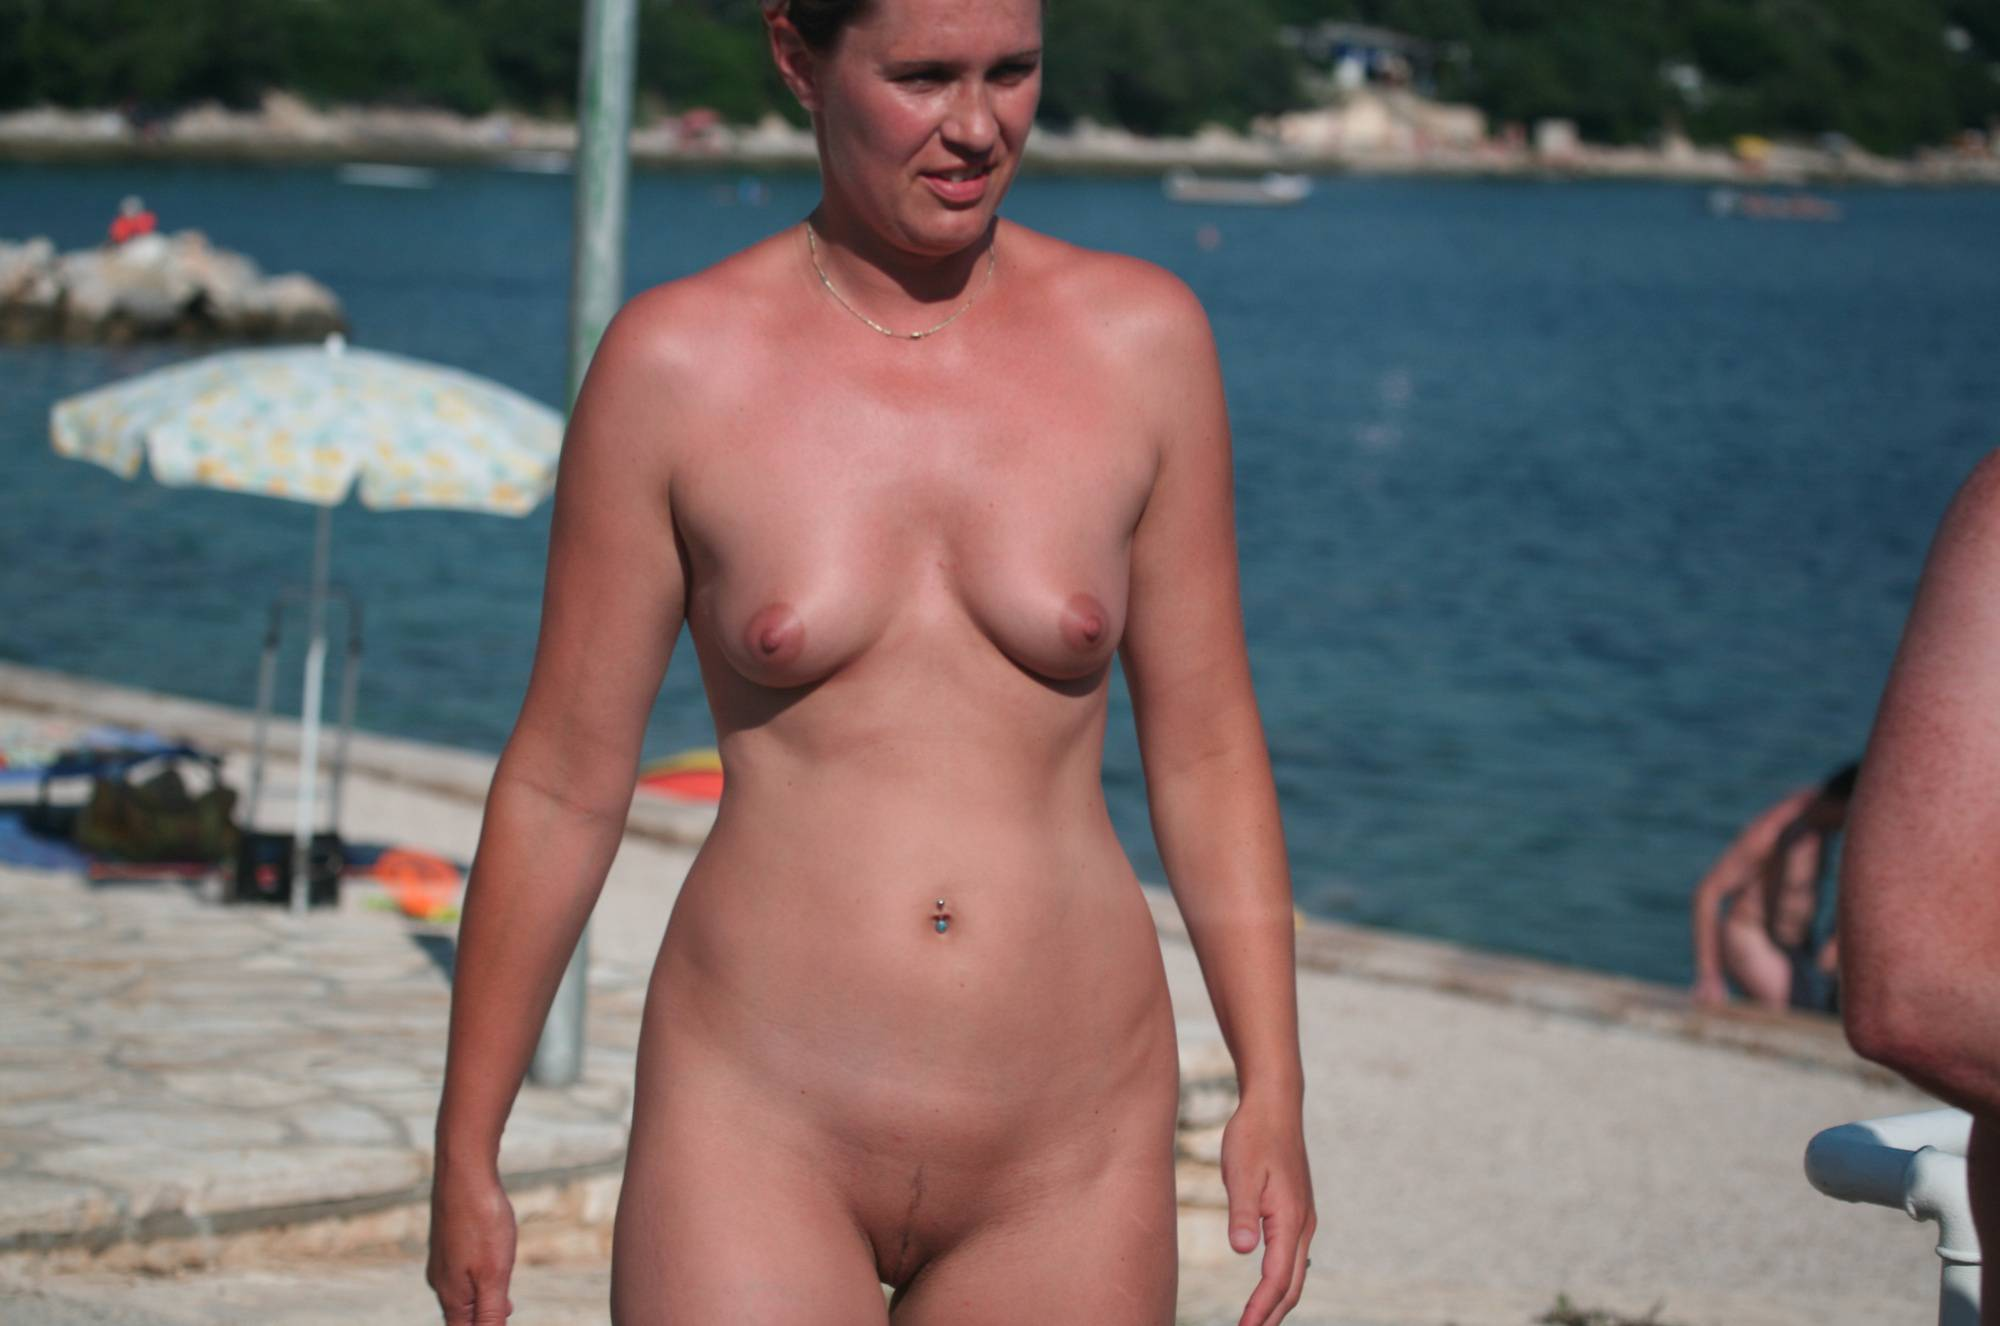 Nudist Resort Shore Walk - 2